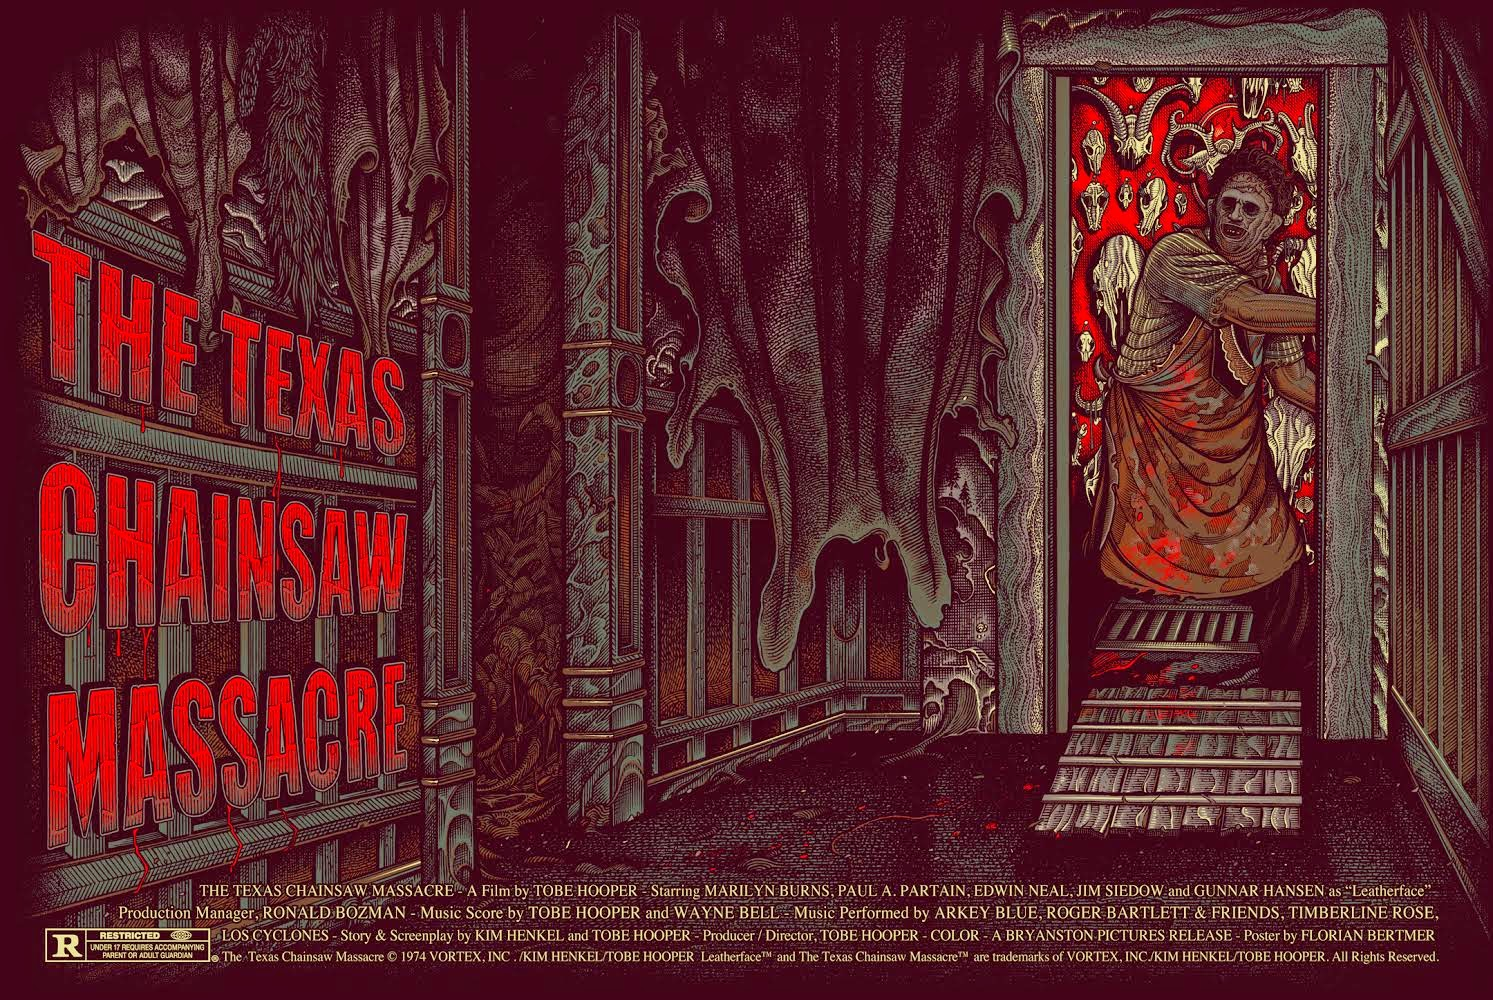 The Texas Chainsaw Massacre Variant Screen Print by Florian Bertmer